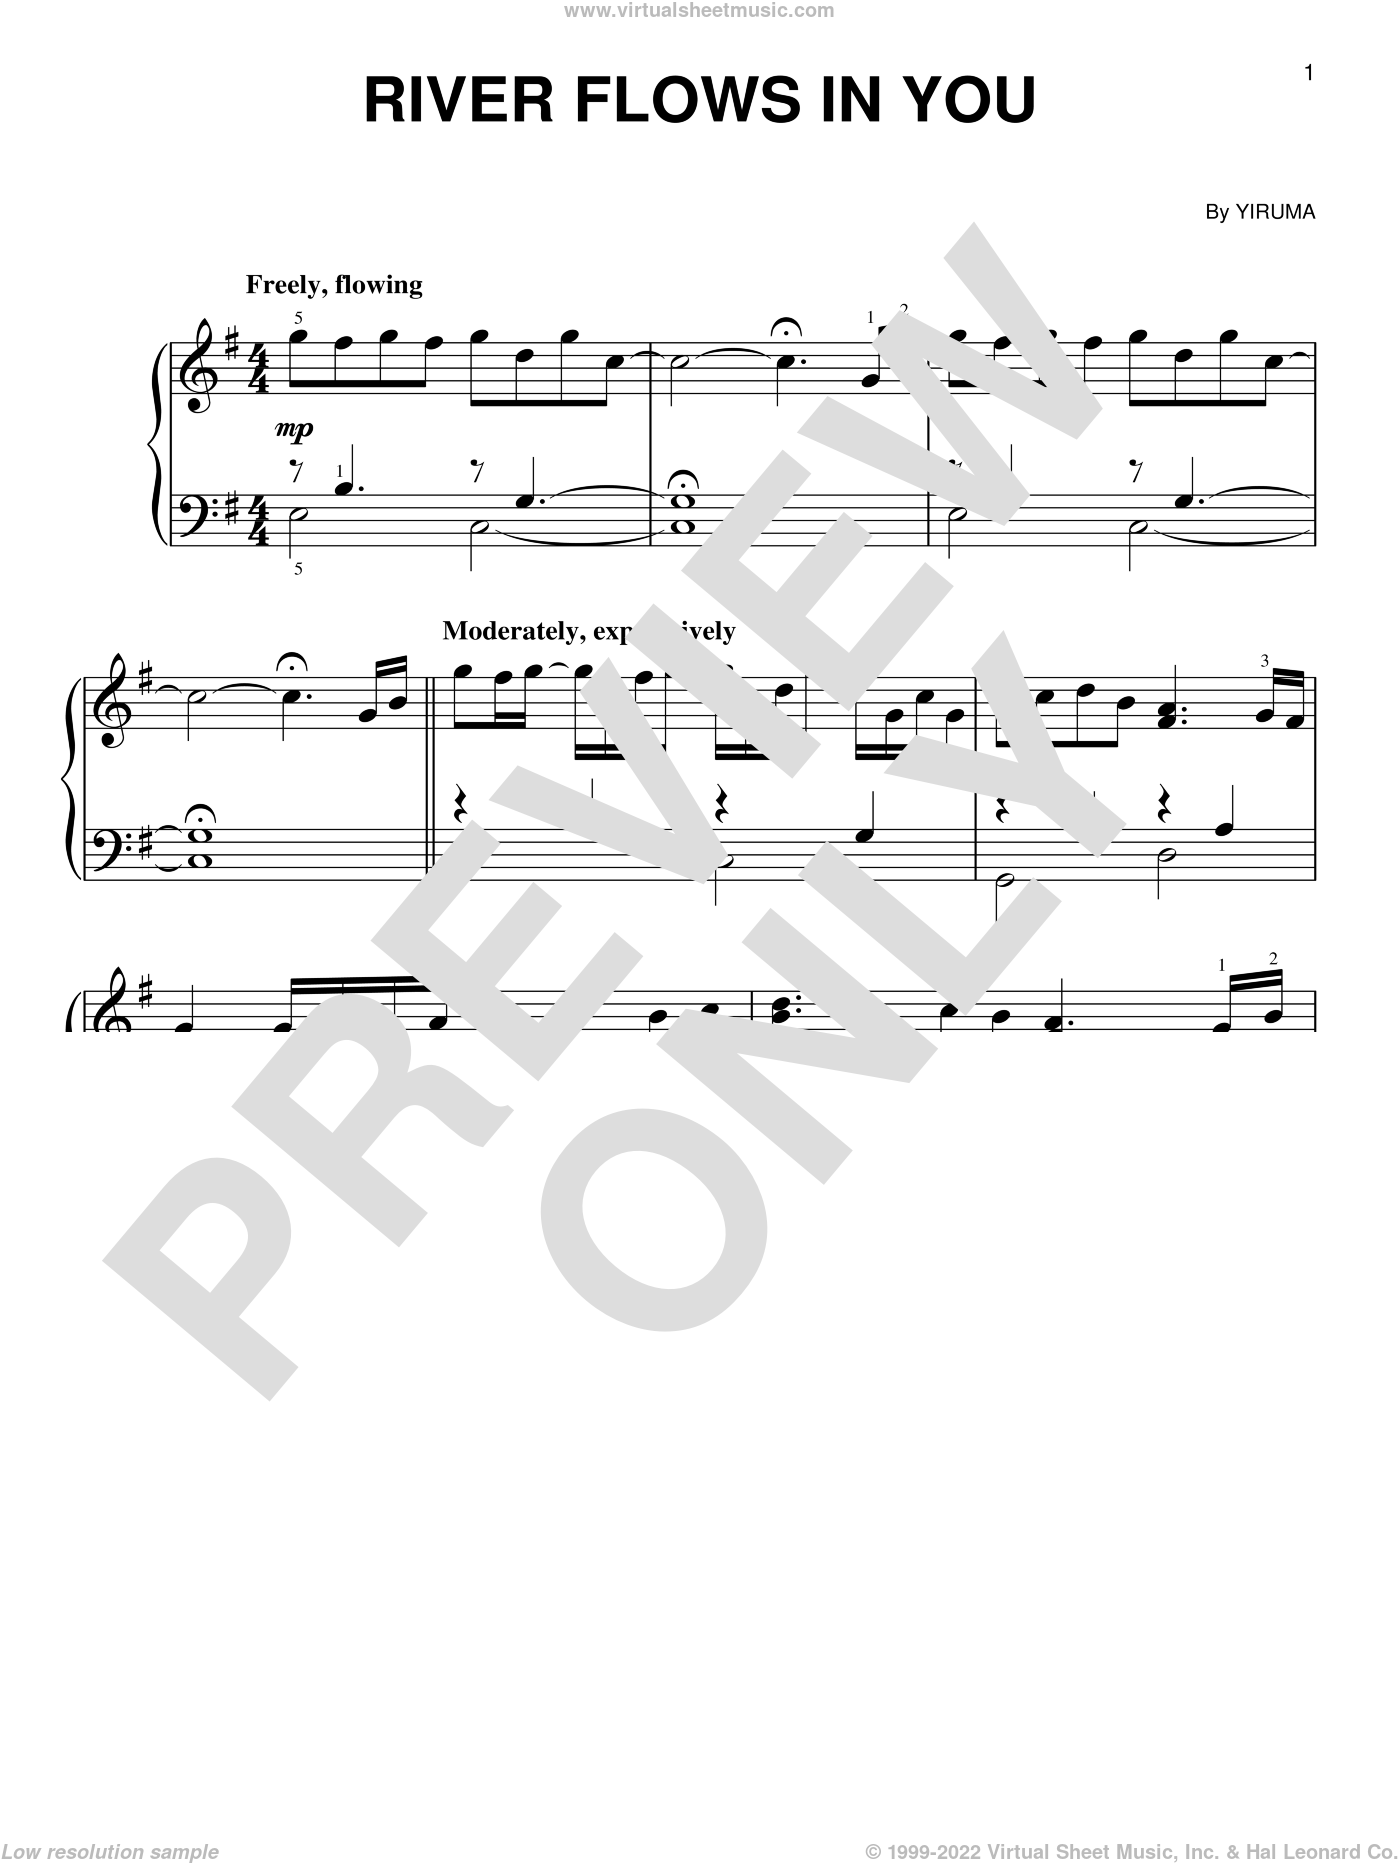 River Flows In You sheet music for piano solo by Yiruma, intermediate skill level